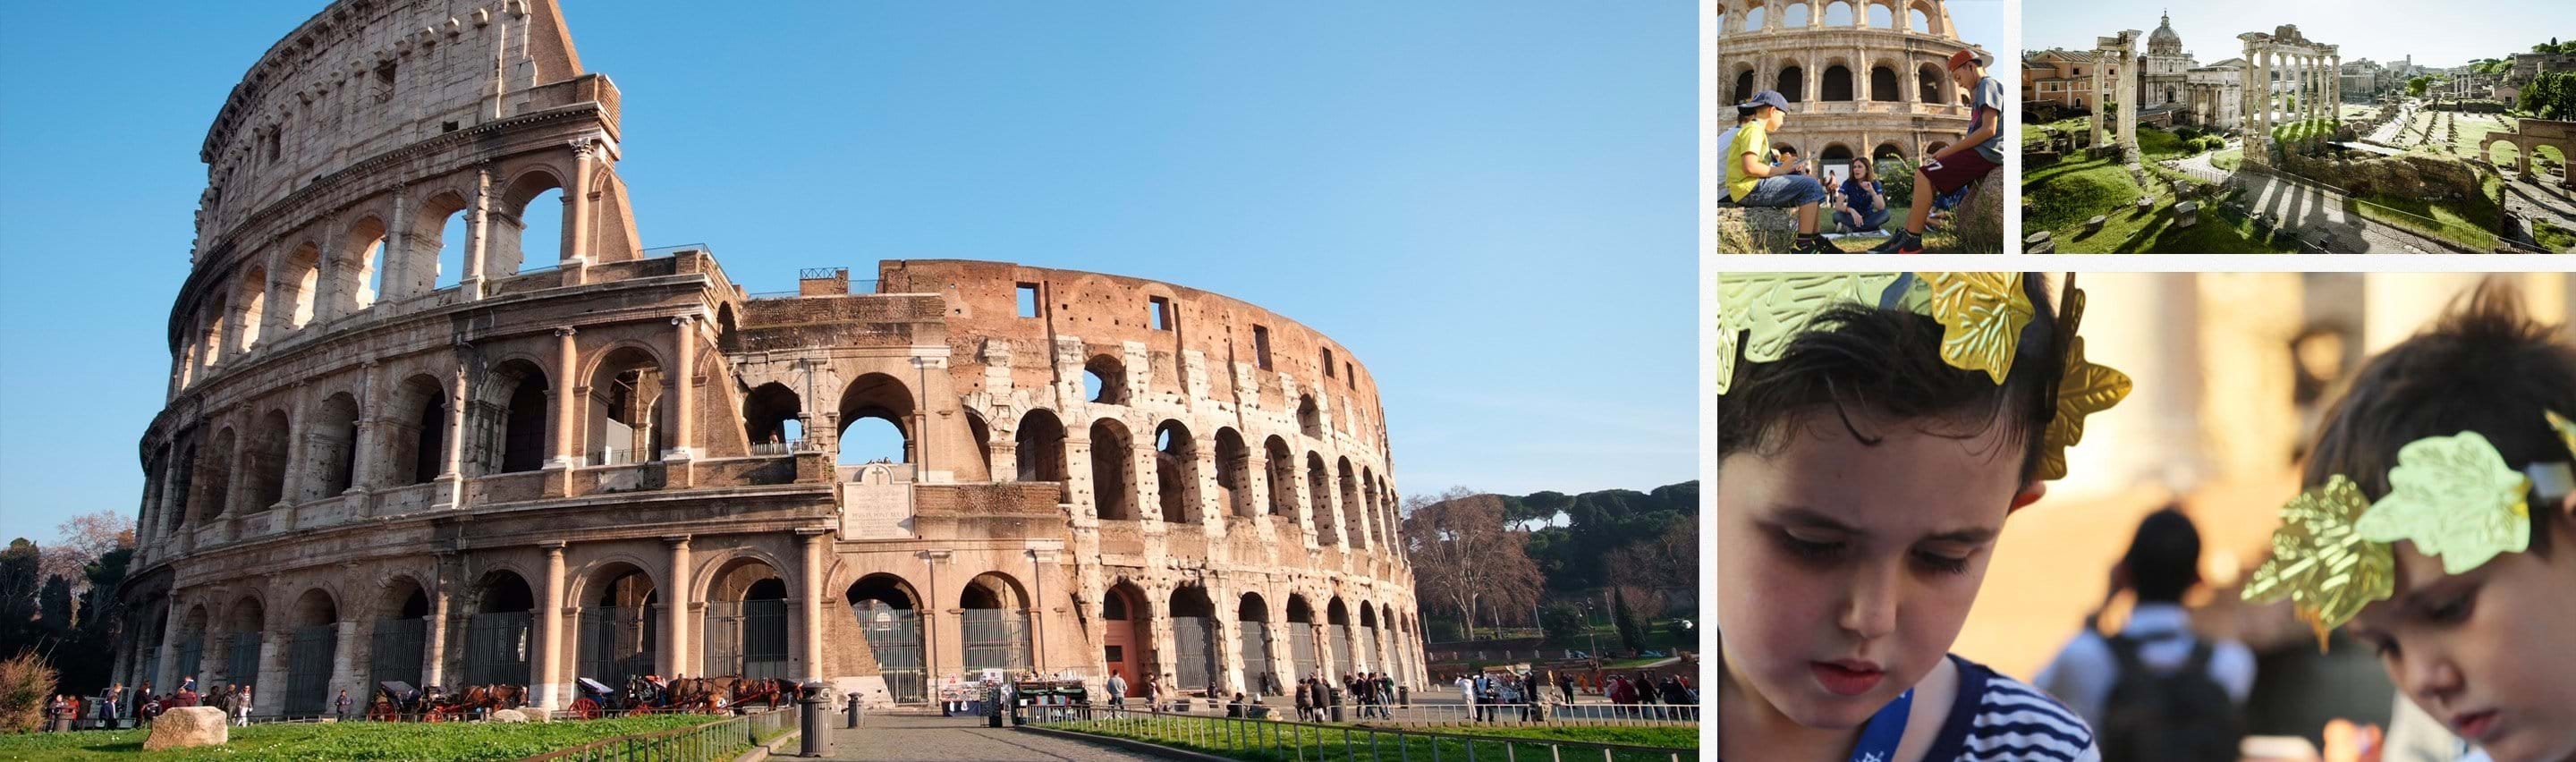 Colosseum for Kids Family Tour